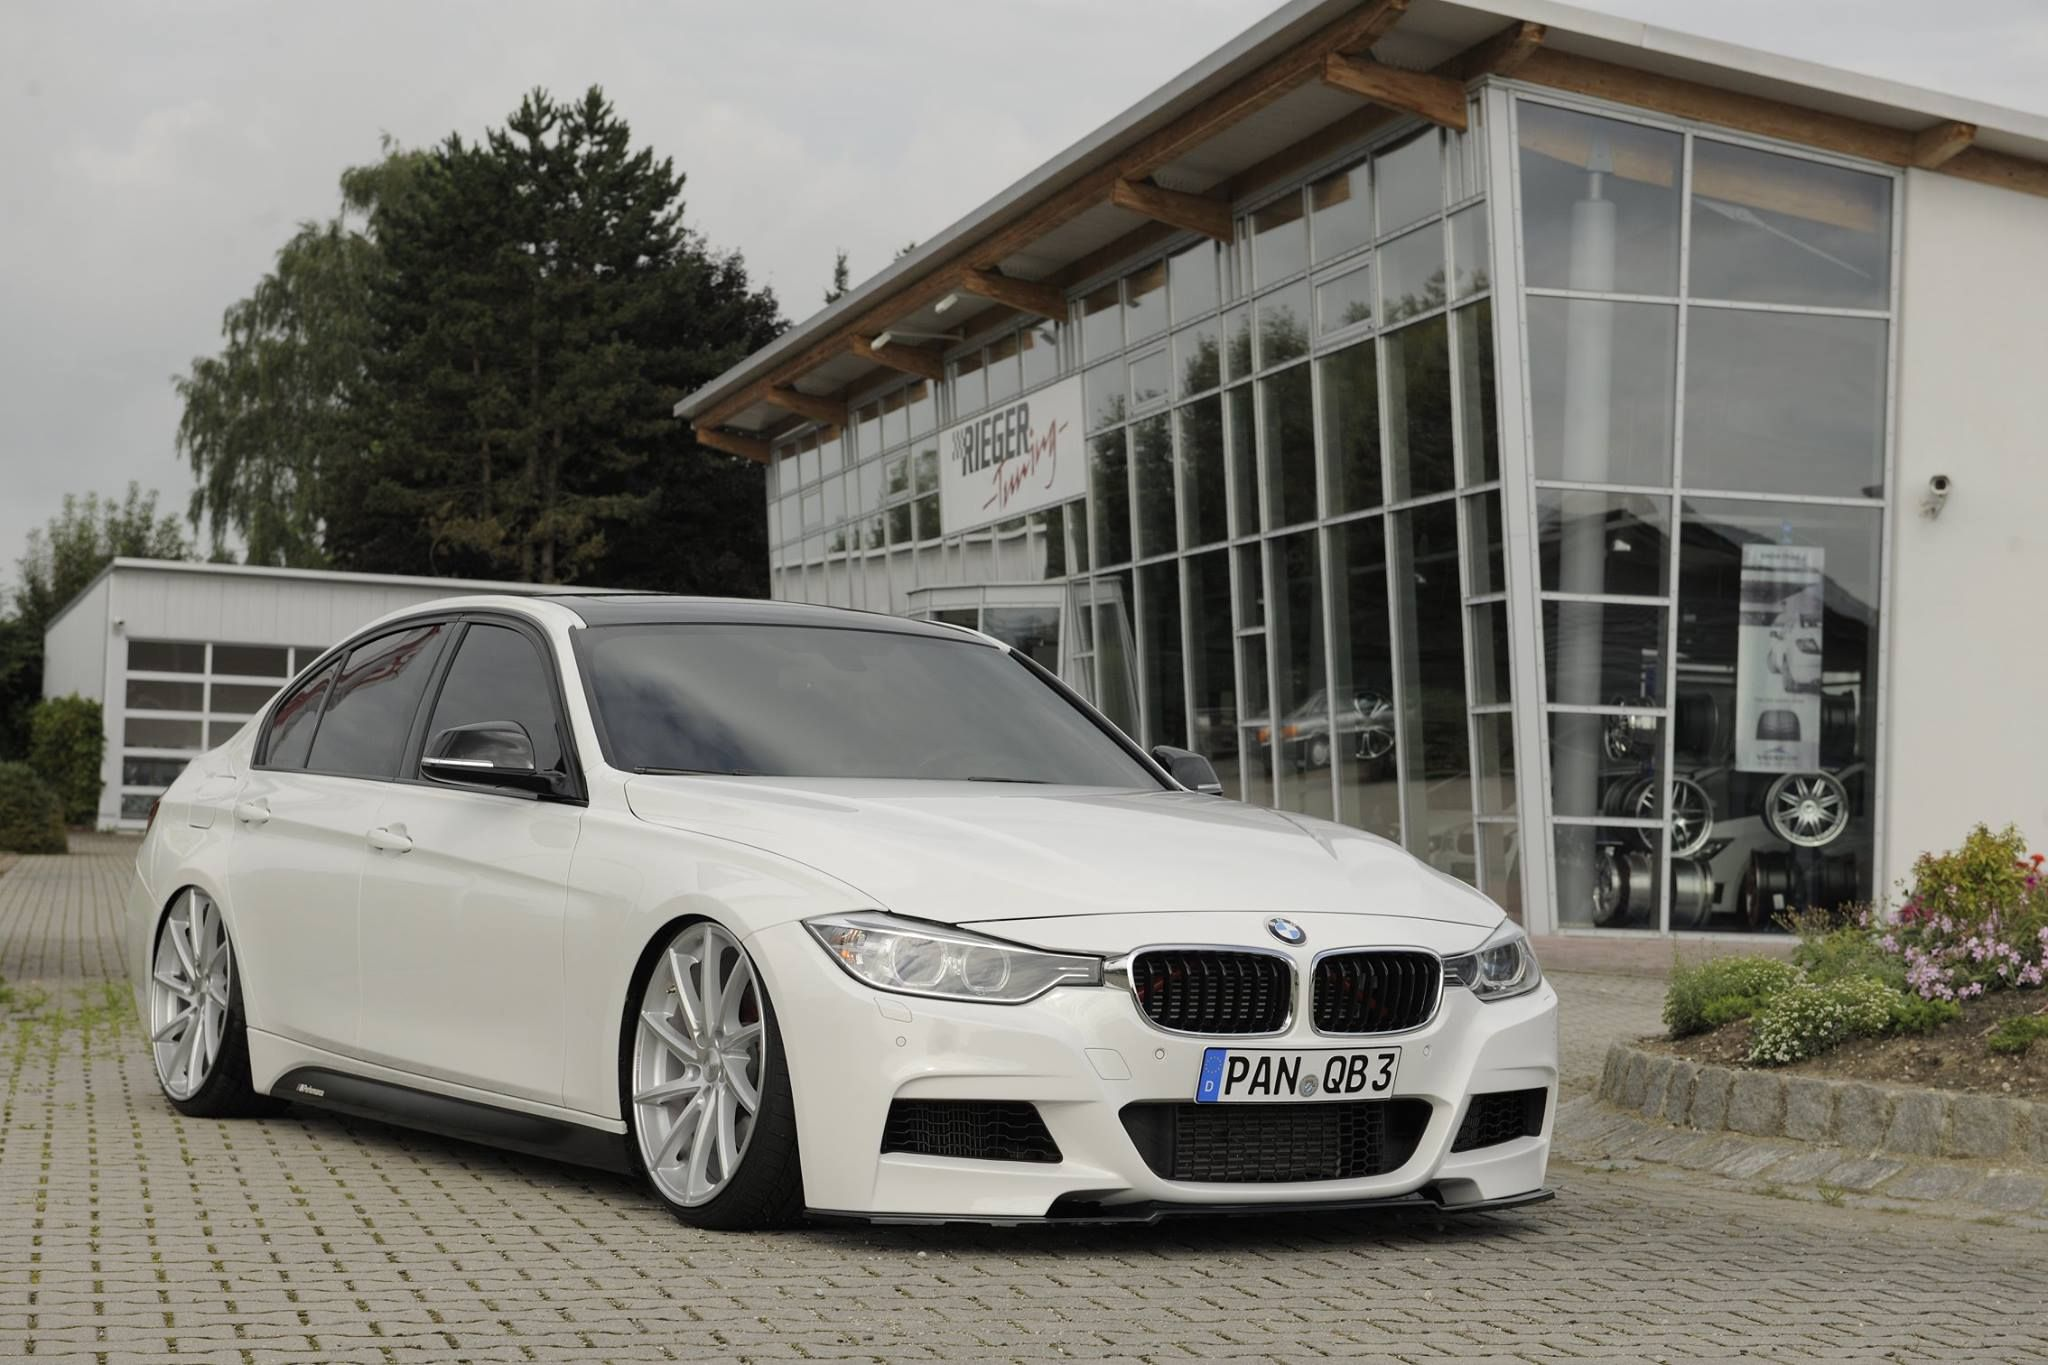 #BMW #F30 #335i #Sedan #MPackage #AlpineWhite #Angel #ReigerTuning #Provocative #Sexy #Hot #Burn #Lİve #Life #Love #Follow #Your #Heart #BMWLife